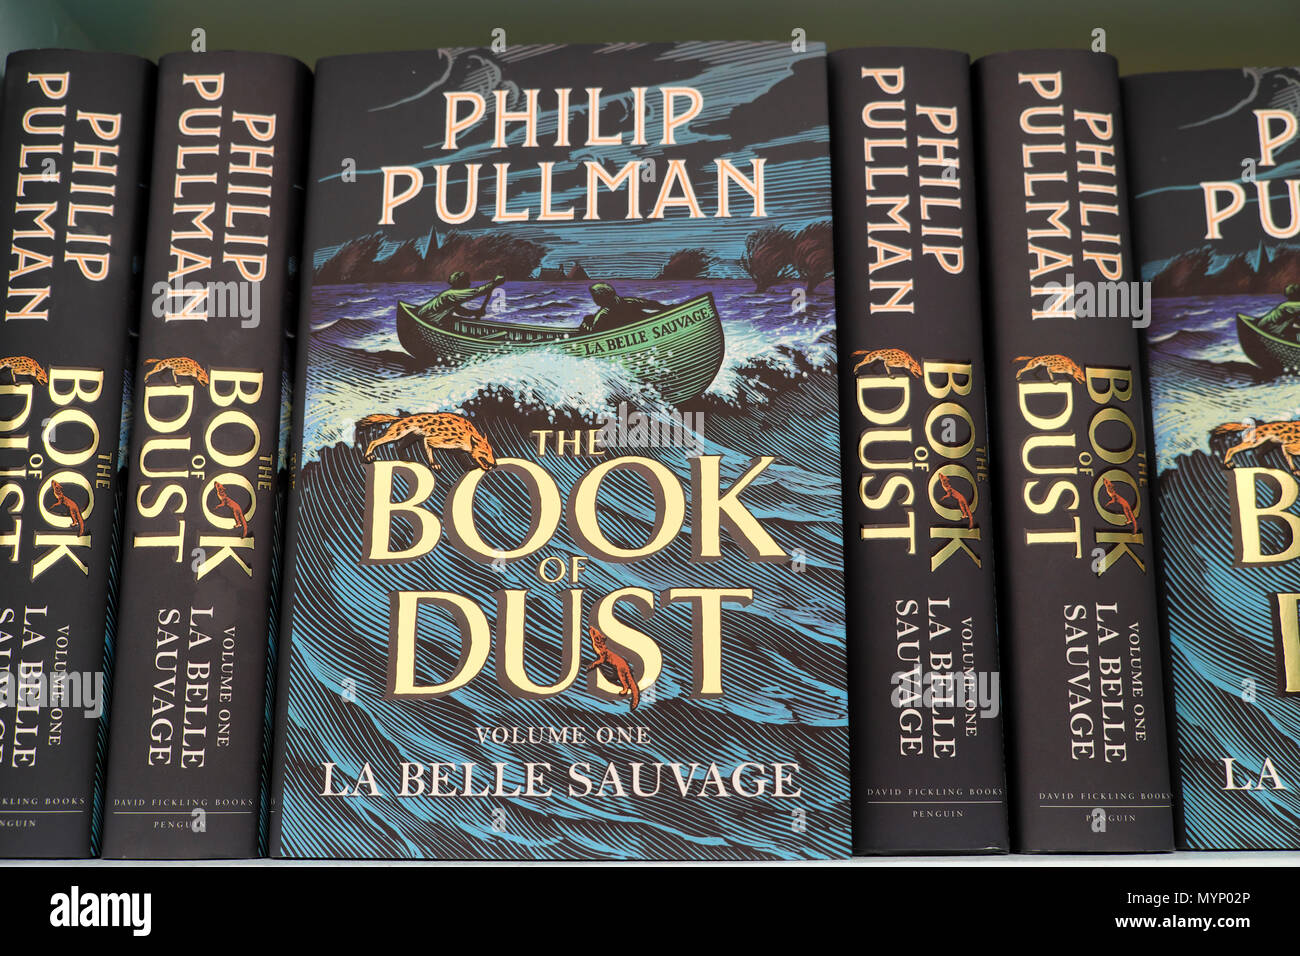 Book cover of Philip Pullman  'Book of Dust' books on book shelf at the Hay Festival 2018 bookstore in Hay-on-Wye UK   KATHY DEWITT - Stock Image